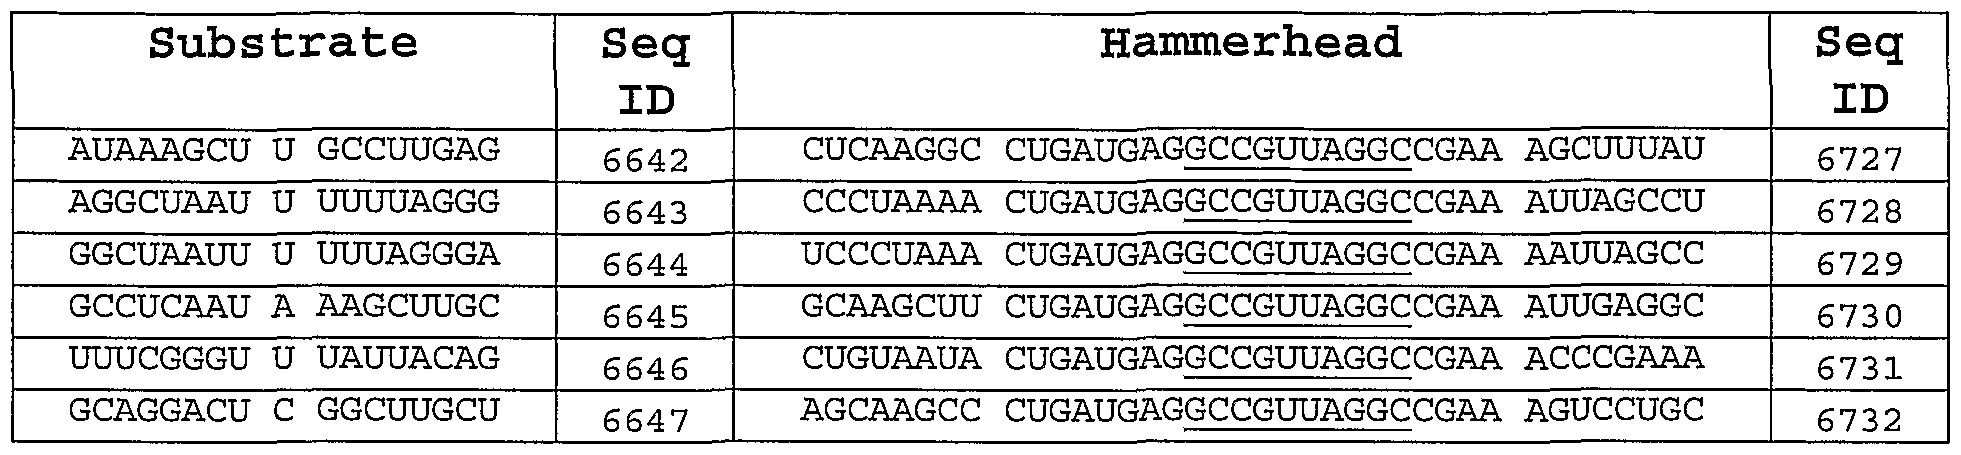 WO2002097114A2 - Nucleic acid treatment of diseases or conditions